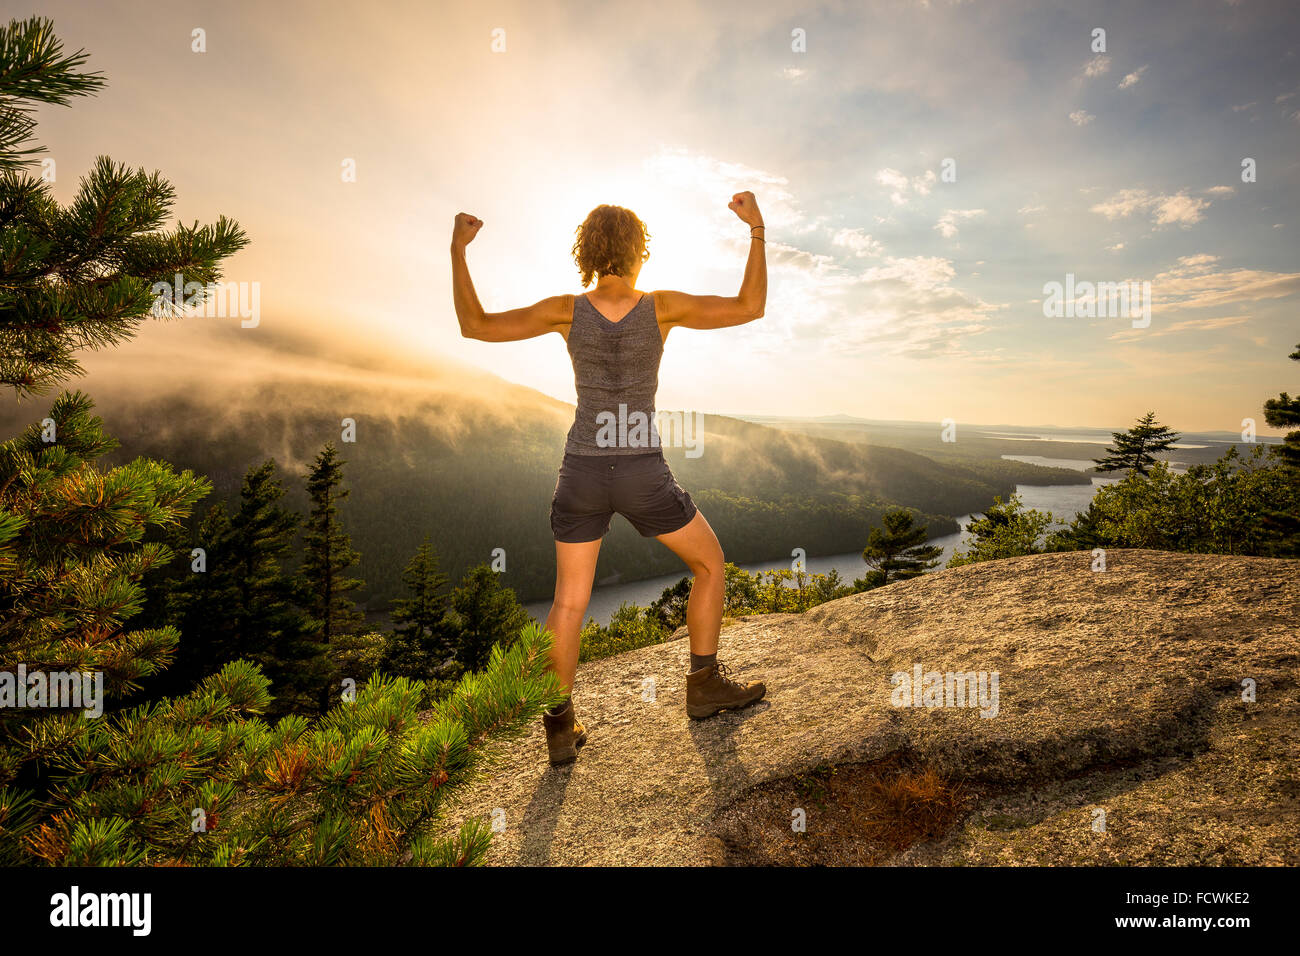 A young woman flexes on a mountaintop overlook in Acadia National Park, Mount Desert Island, Maine, New England, - Stock Image